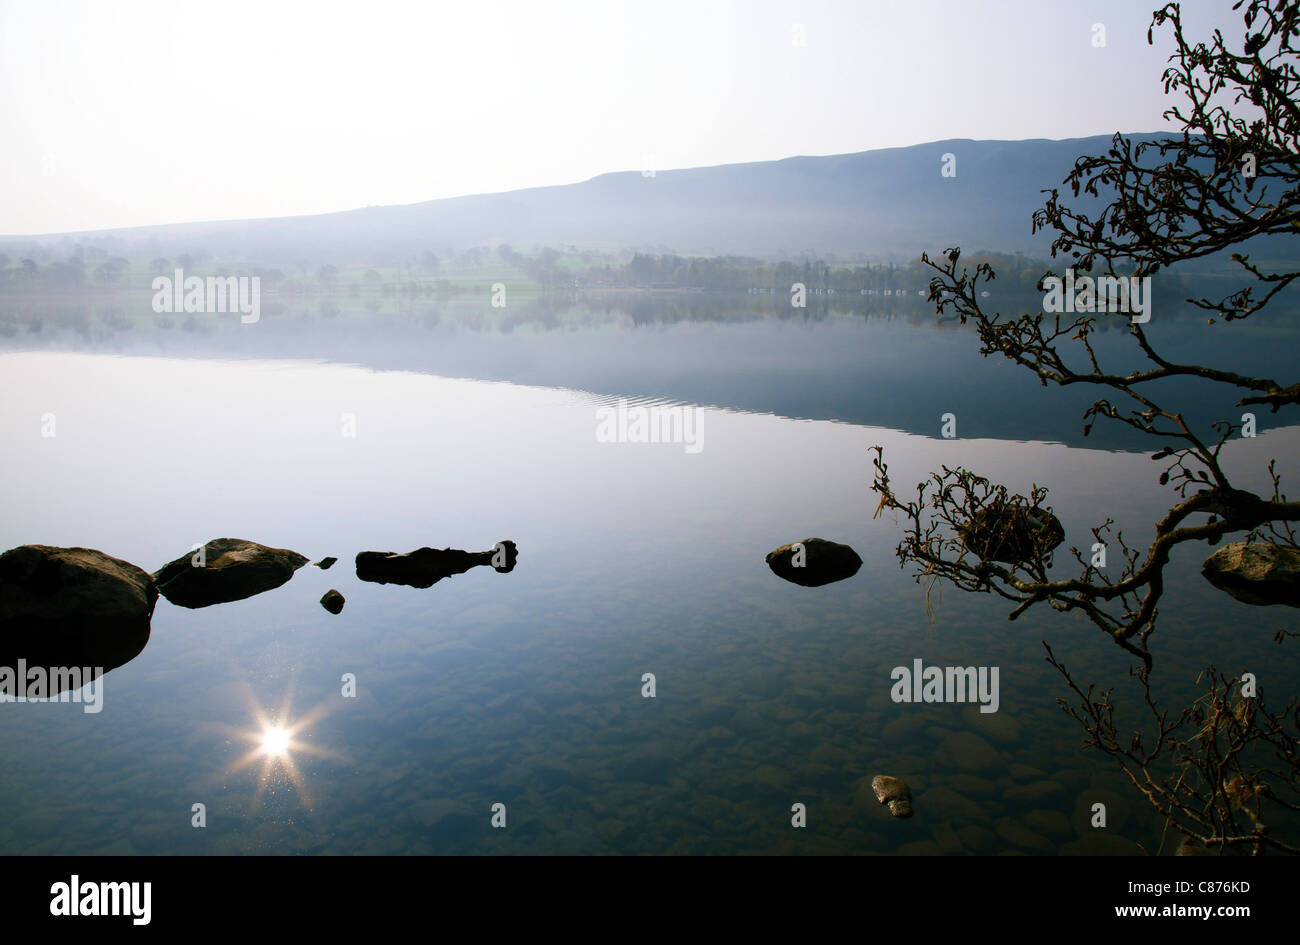 Ullswater lake at dawn with slight mist and flare on reflection of sun in water - Stock Image